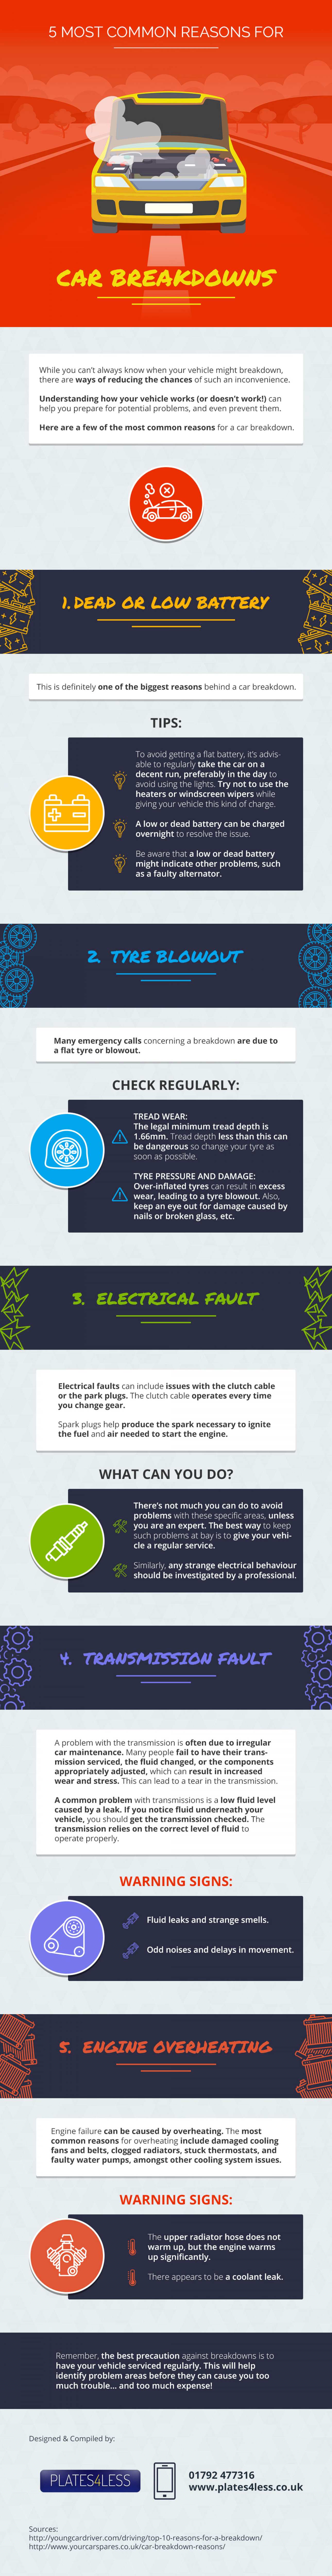 5 Most Common Reasons for Car Breakdowns Infographic